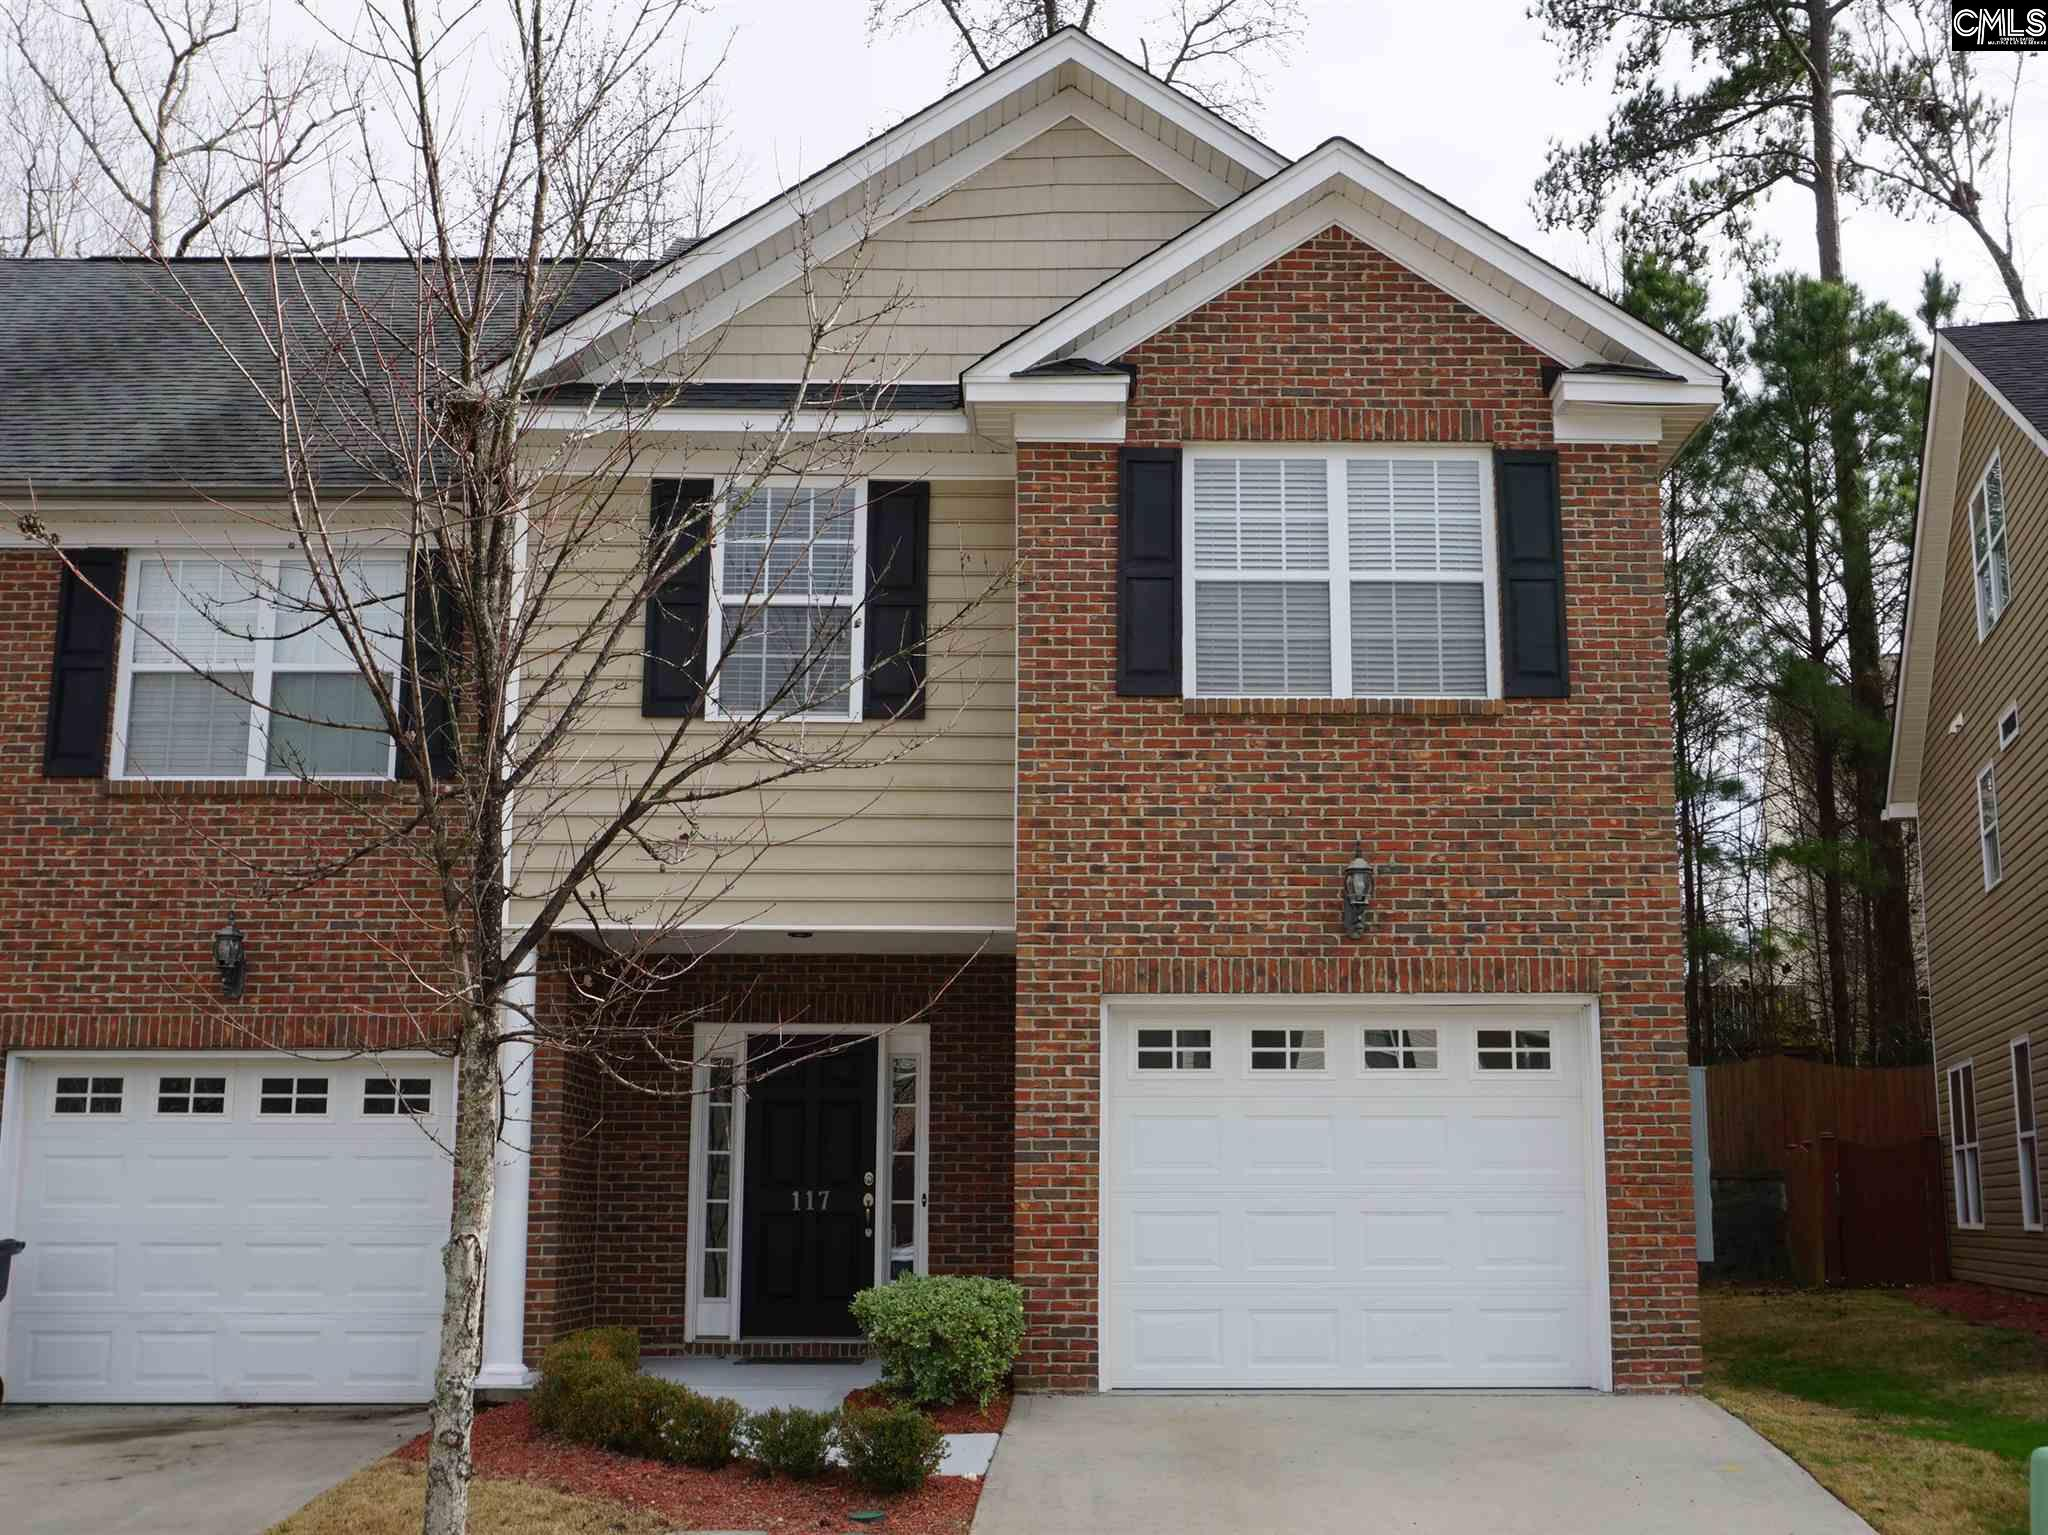 117 Park Ridge Lexington, SC 29072-1824